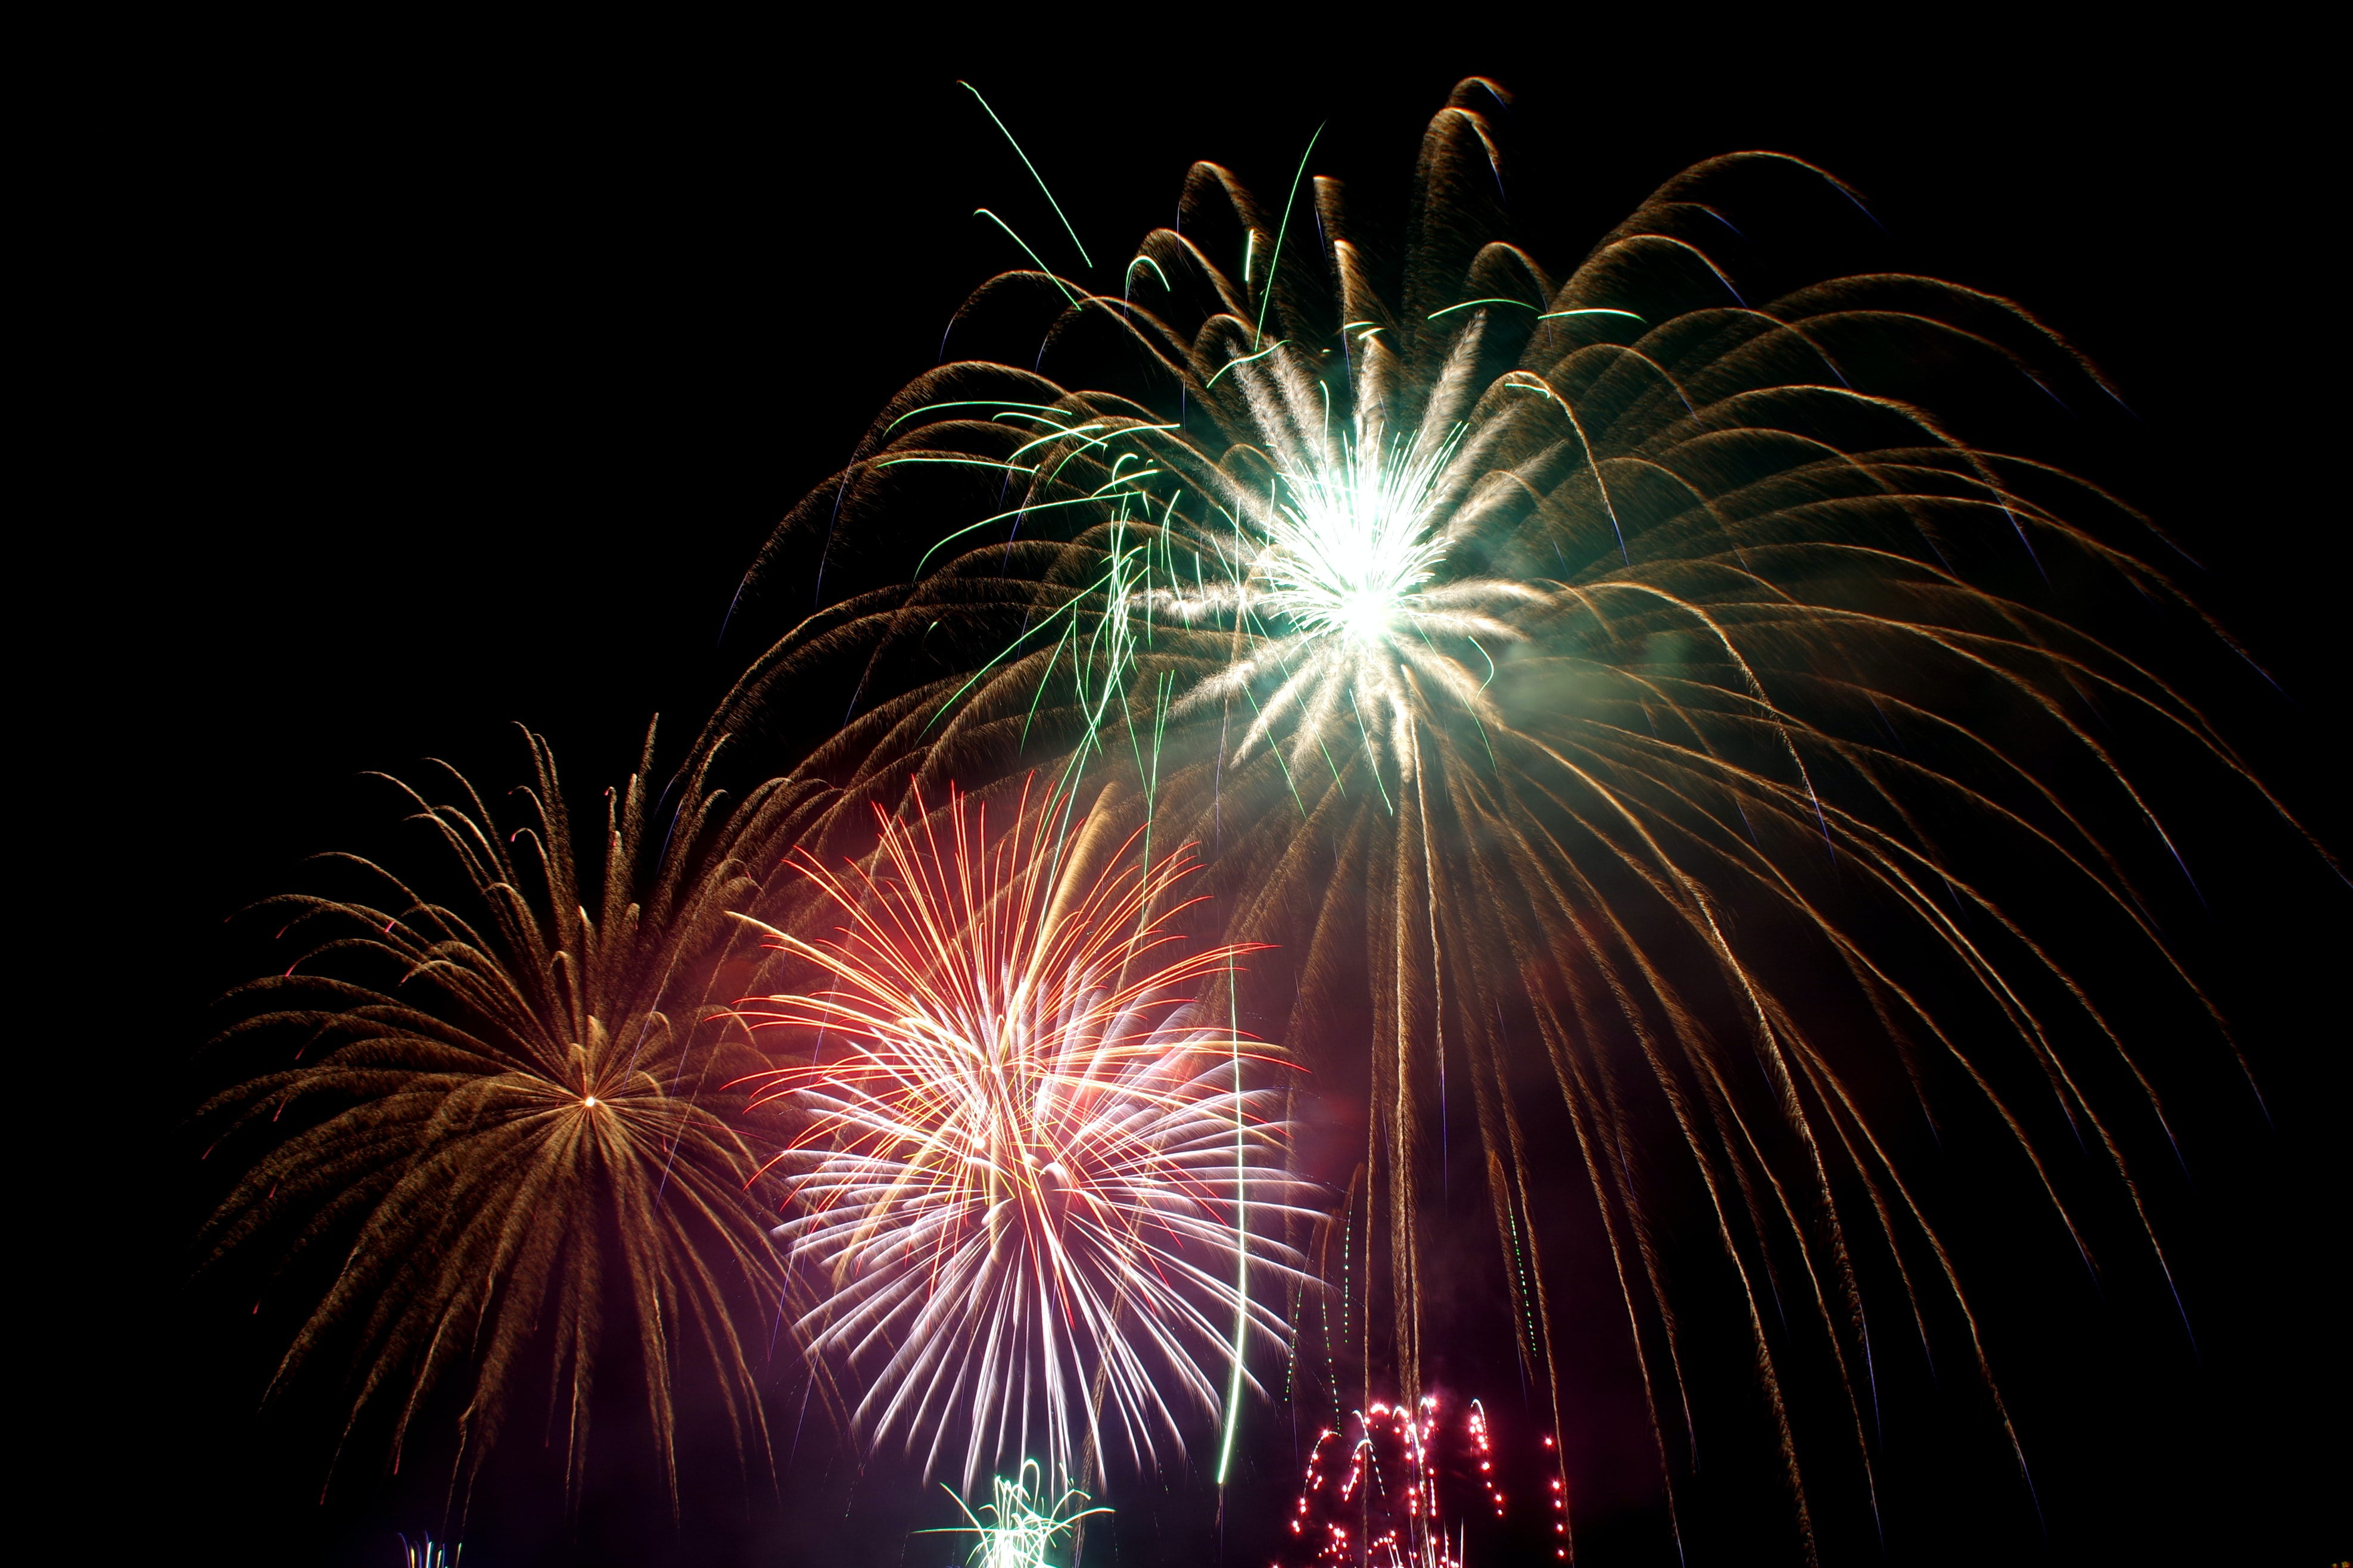 assorted-color fireworks during nighttime